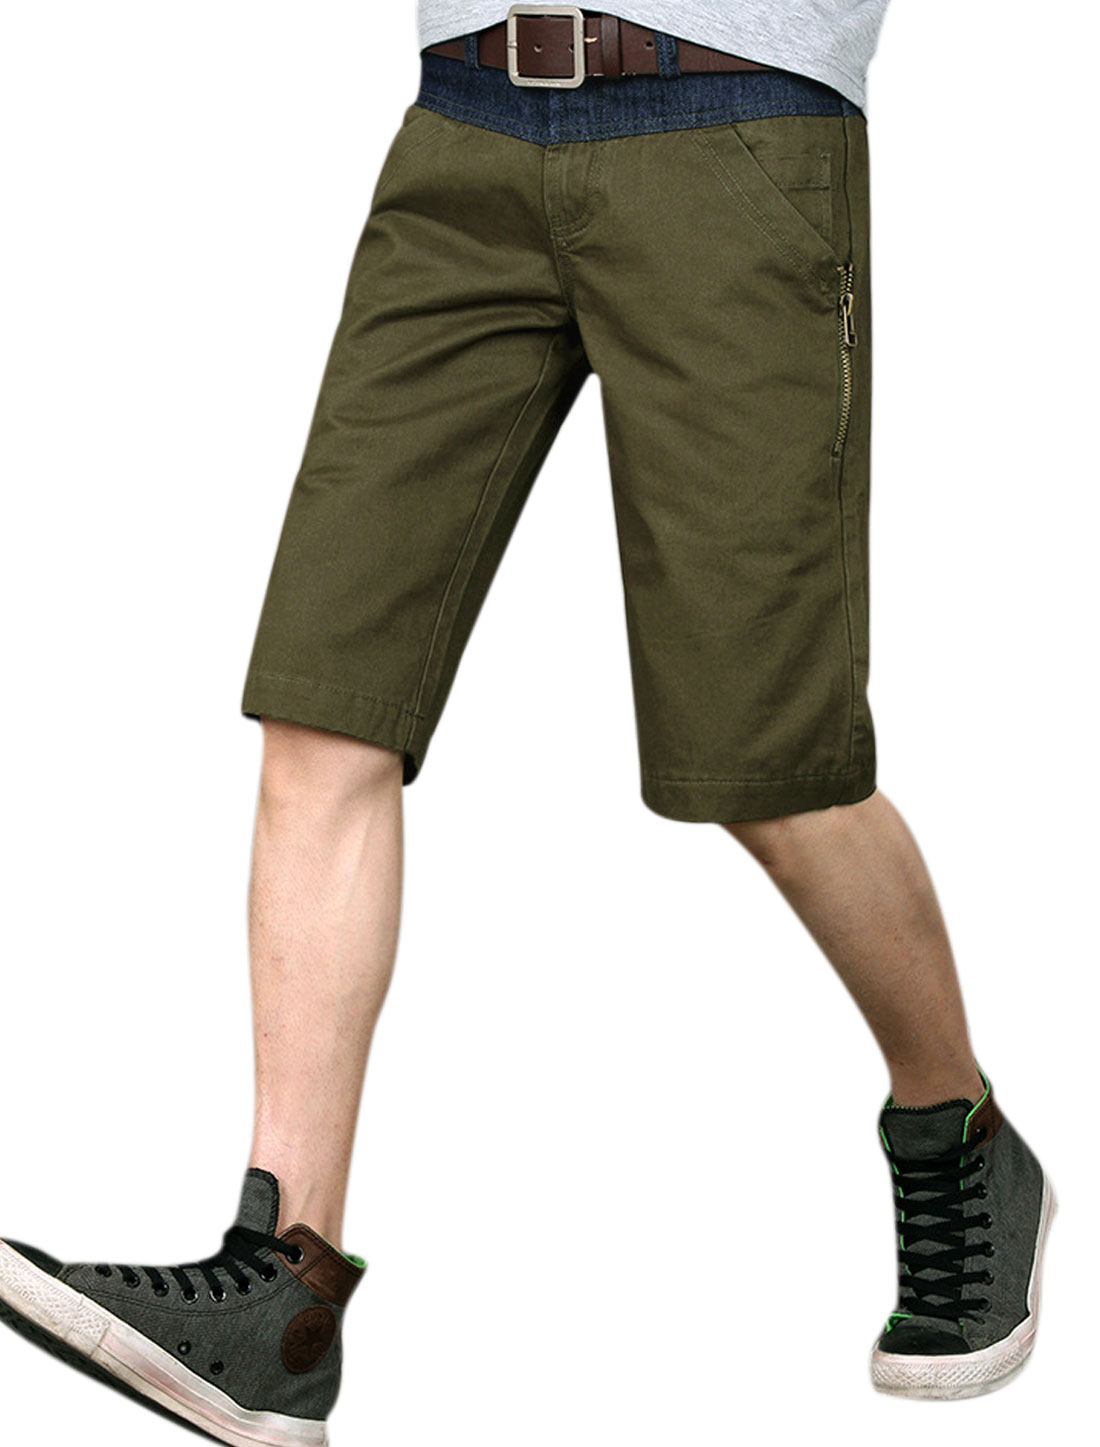 Man's Belt Loop Zipper Detail Slant Front Pockets Chino Shorts Army Green W34